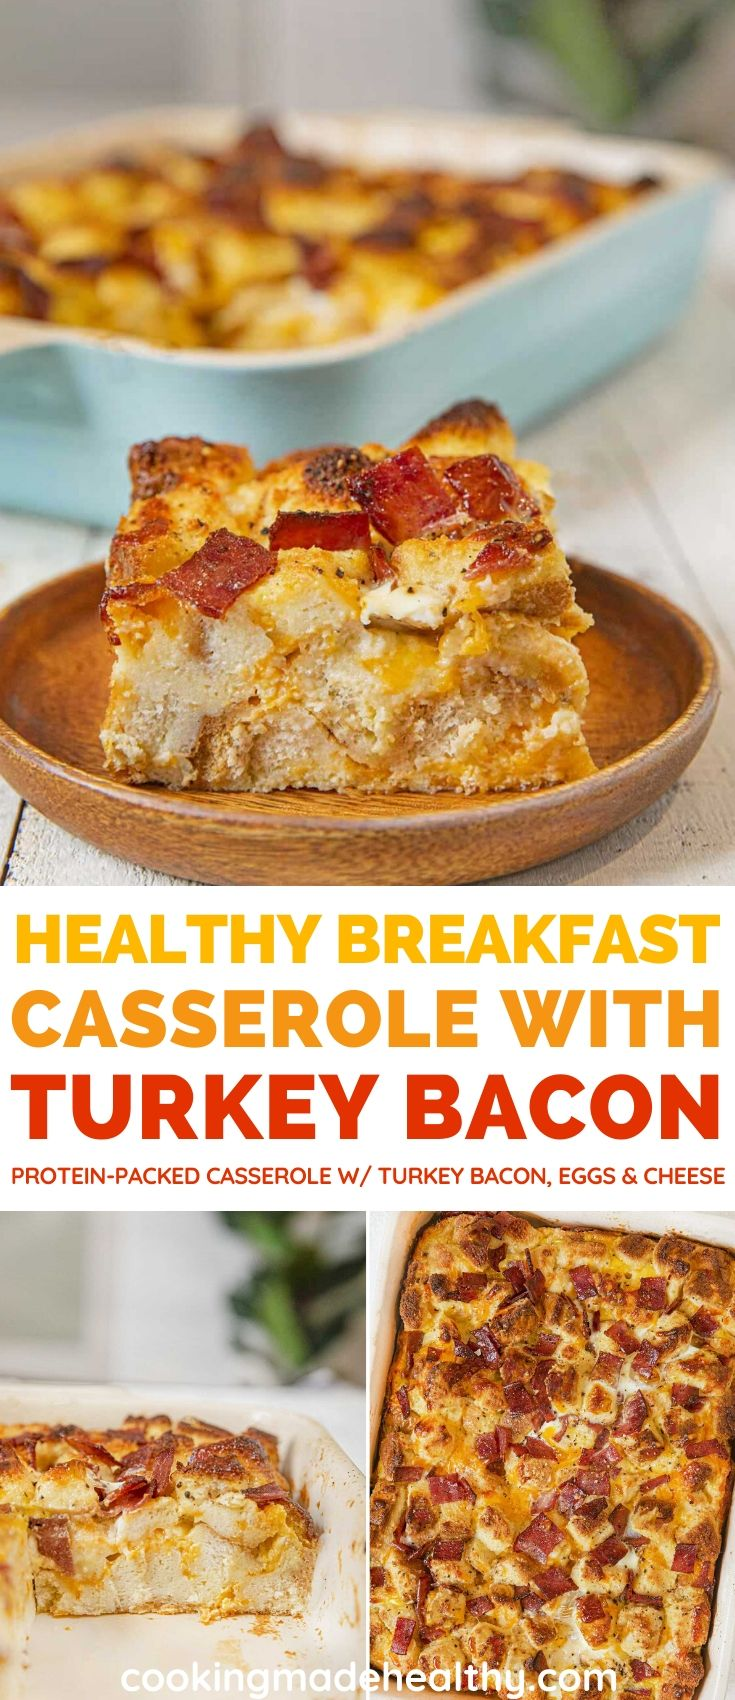 Healthy Breakfast Casserole with Turkey Bacon collage